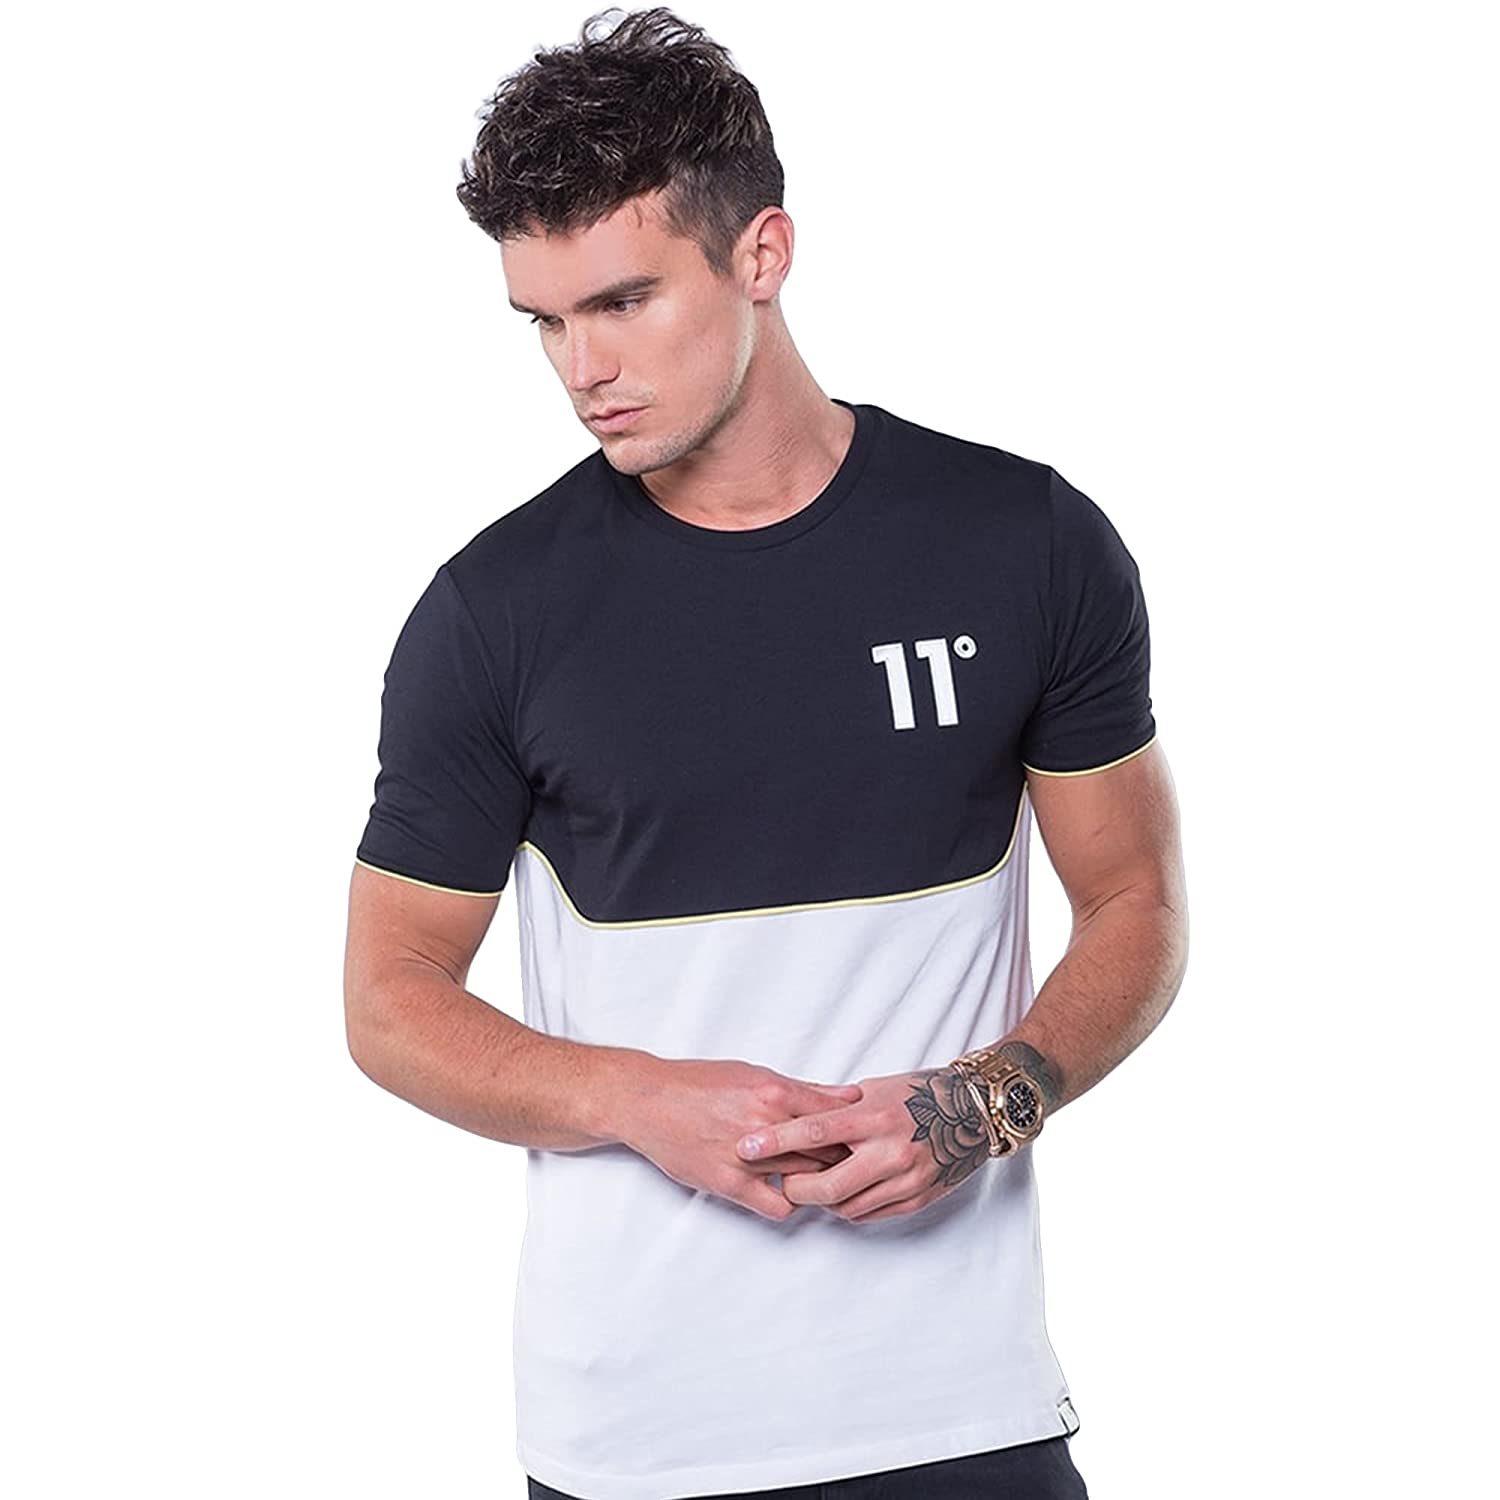 eb6b1aef8 Eleven Degrees 11 Degrees 11D-672 Black/White With Yellow Piping  Half-Sleeve T-Shirt X-Large Black: Amazon.co.uk: Clothing